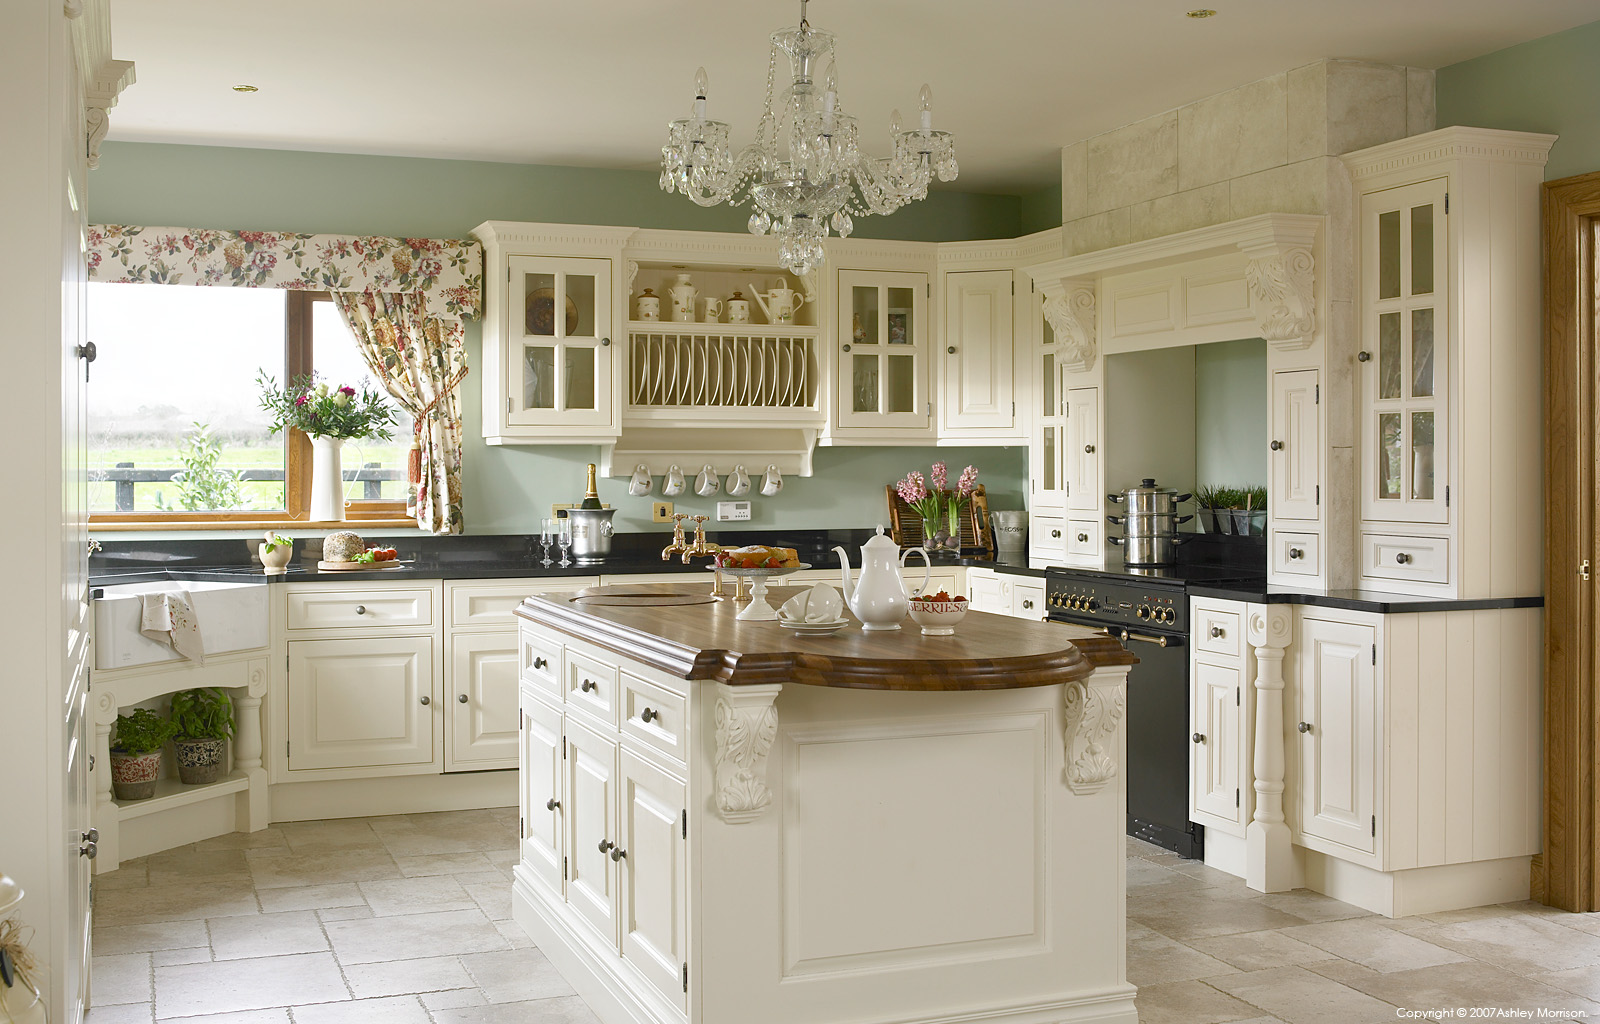 Kitchen by O'Donnell Kitchens / O&S doors Ltd in Dungannon.